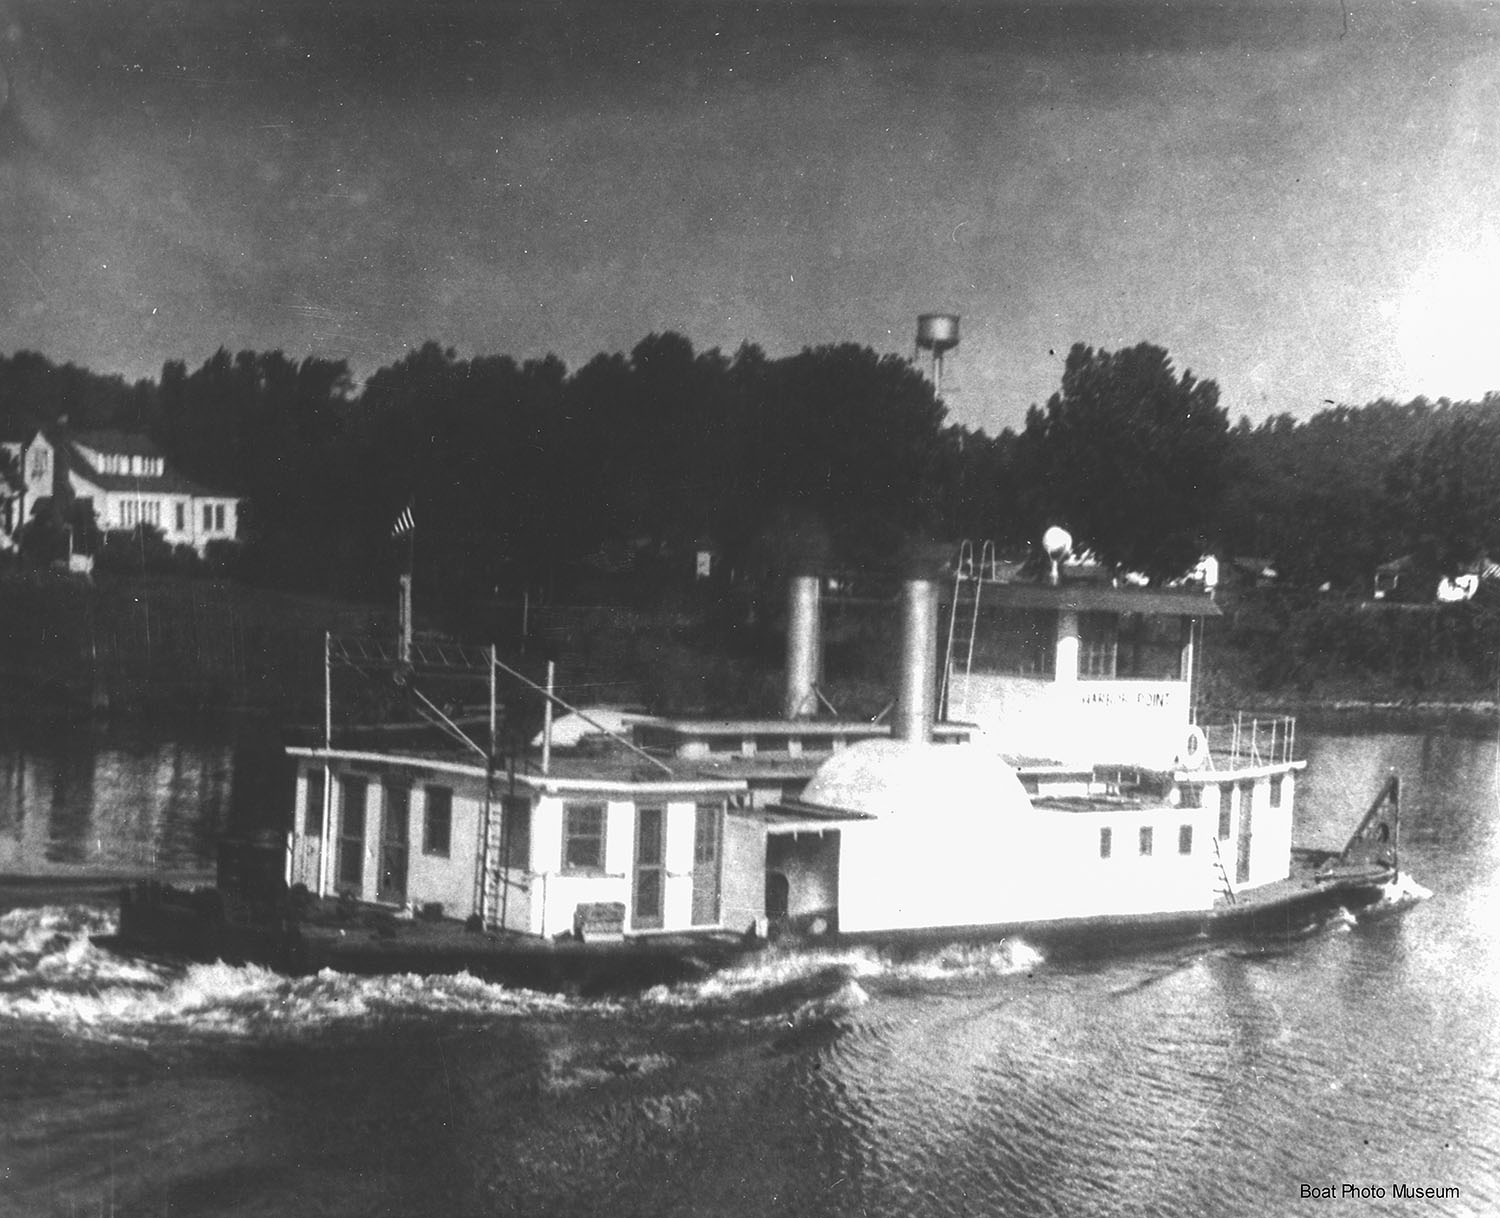 The SUNCO A-4 as a sidewheel towboat. (—Capt. Ben Gilbert photo from Dan Owen/Boat Photo Museum)